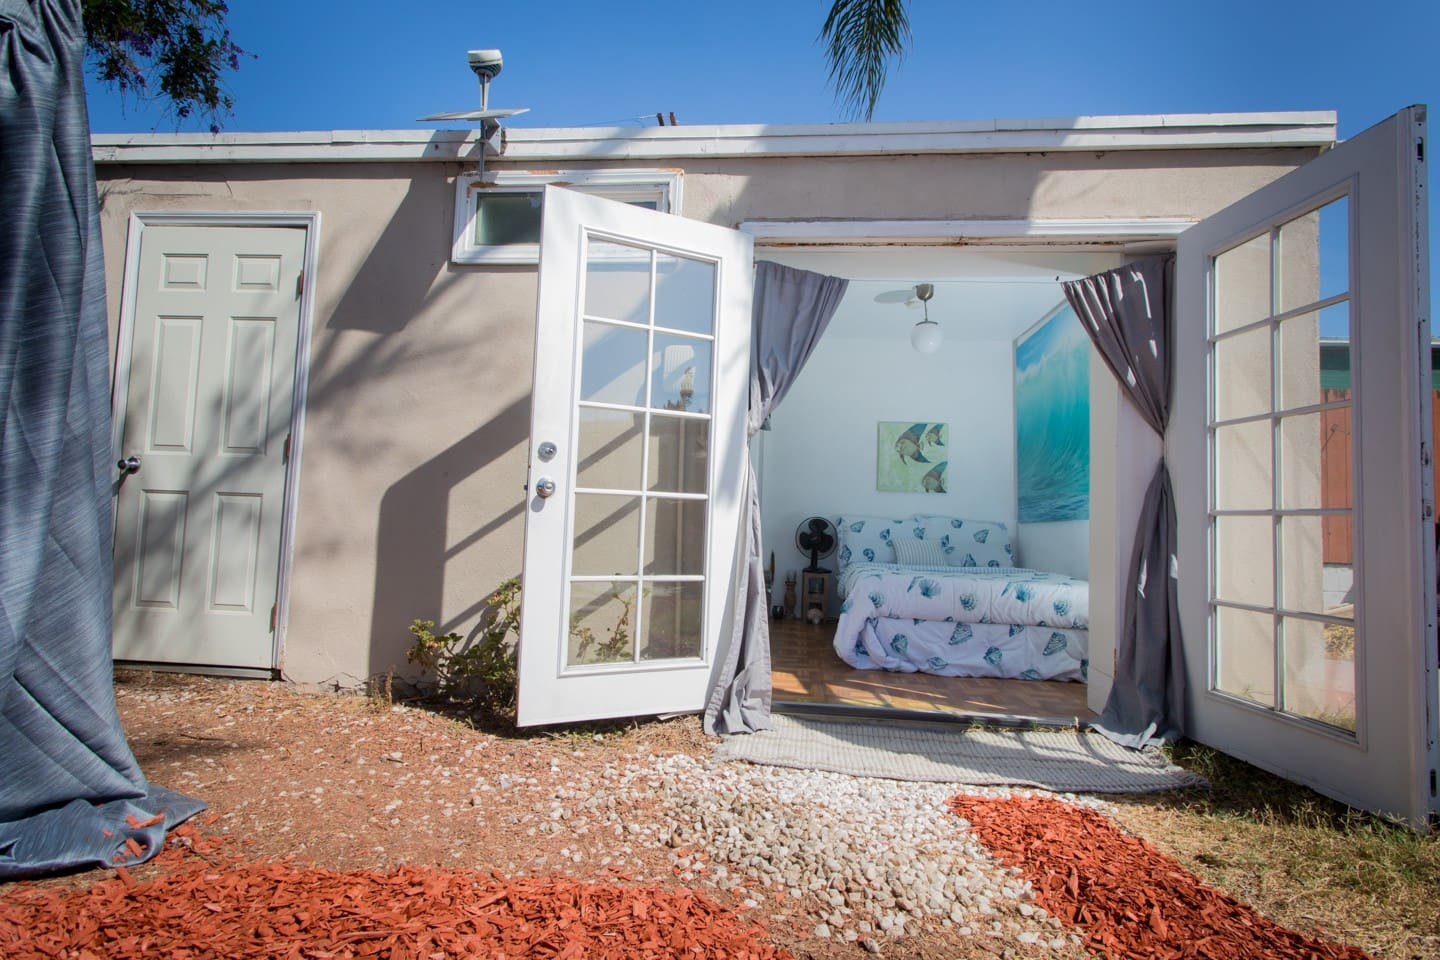 Your own guestroom and bathroom separated from our house in the backyard. Own entrance with convenient easy self check in